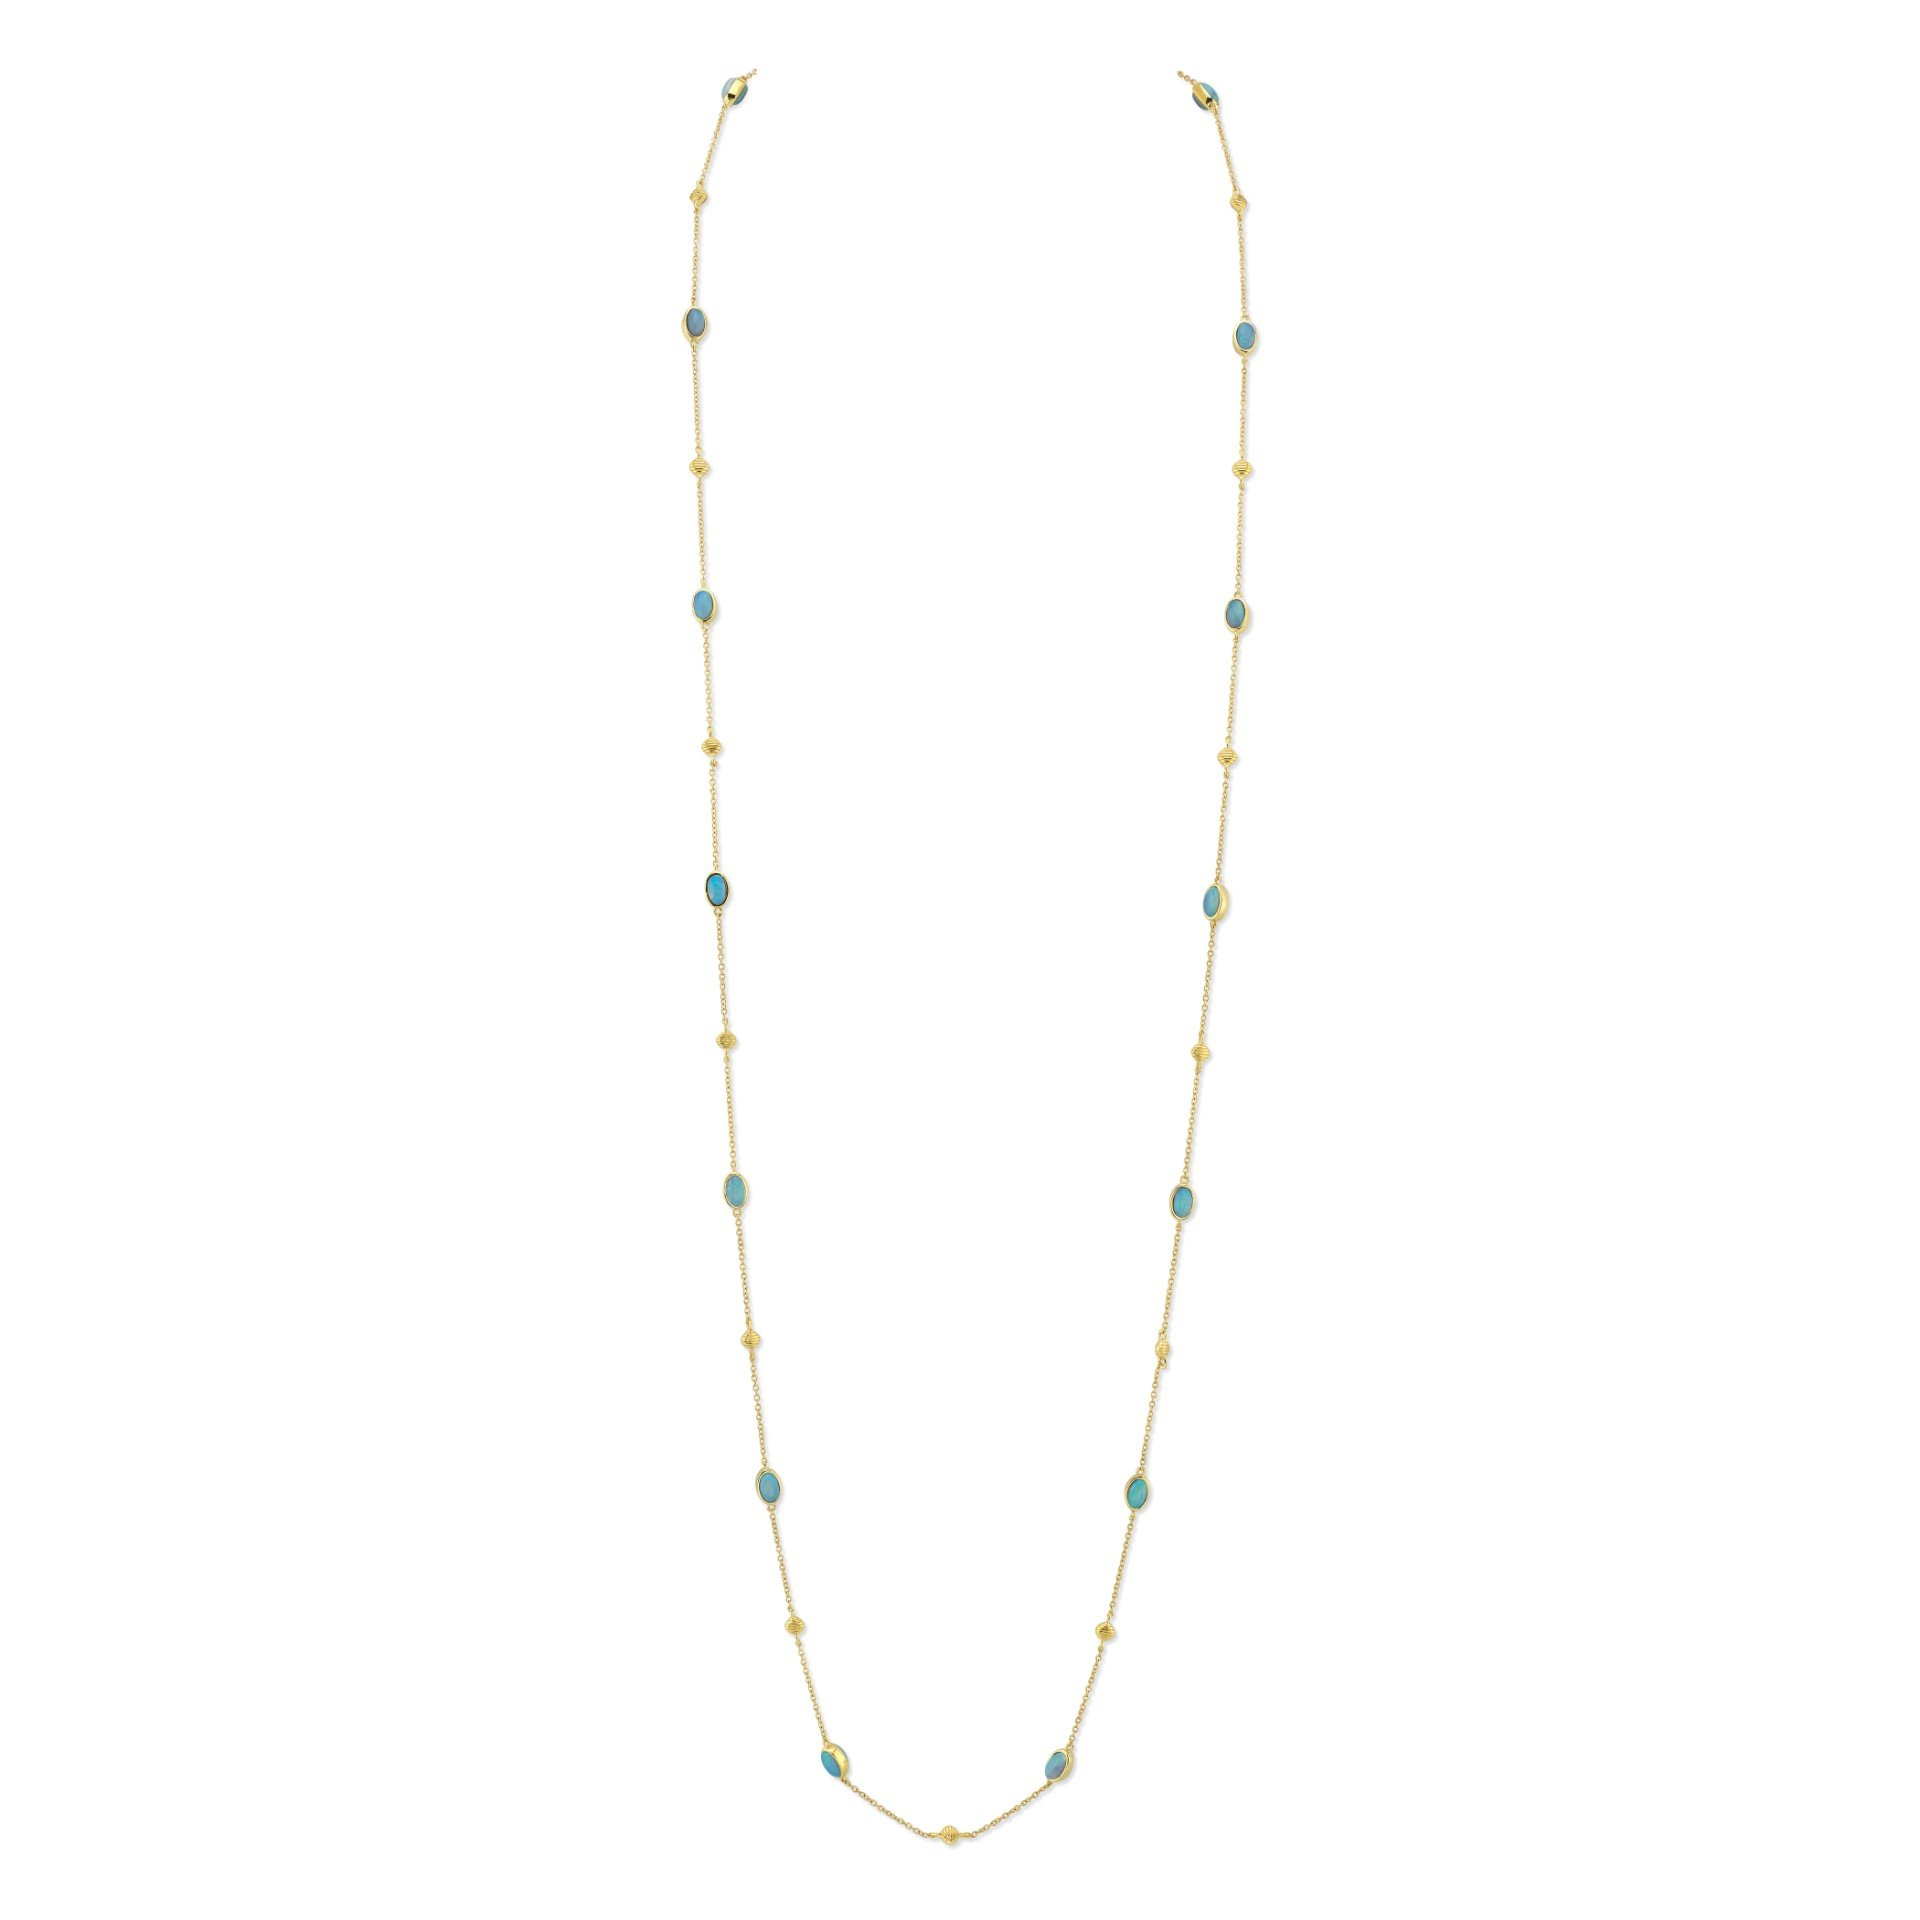 Sloane Street 18K Yellow Gold 4.5cts  Crystal Opal Gold Necklace with Stones CH006E-CO-Y